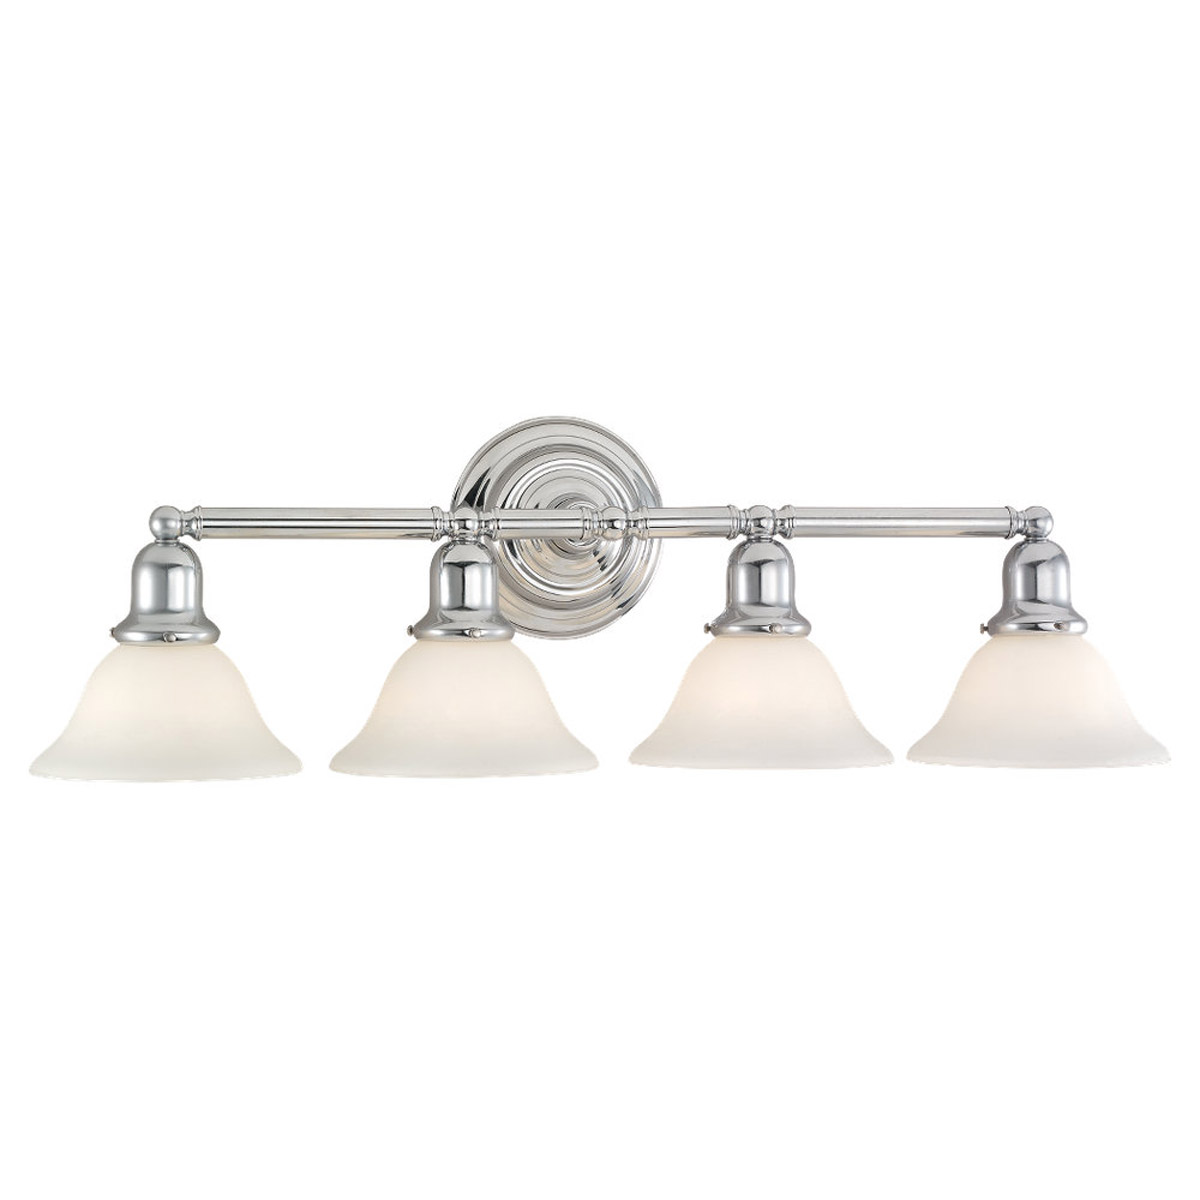 Sea Gull Lighting Sussex 4 Light Bath Vanity in Chrome 44063-05